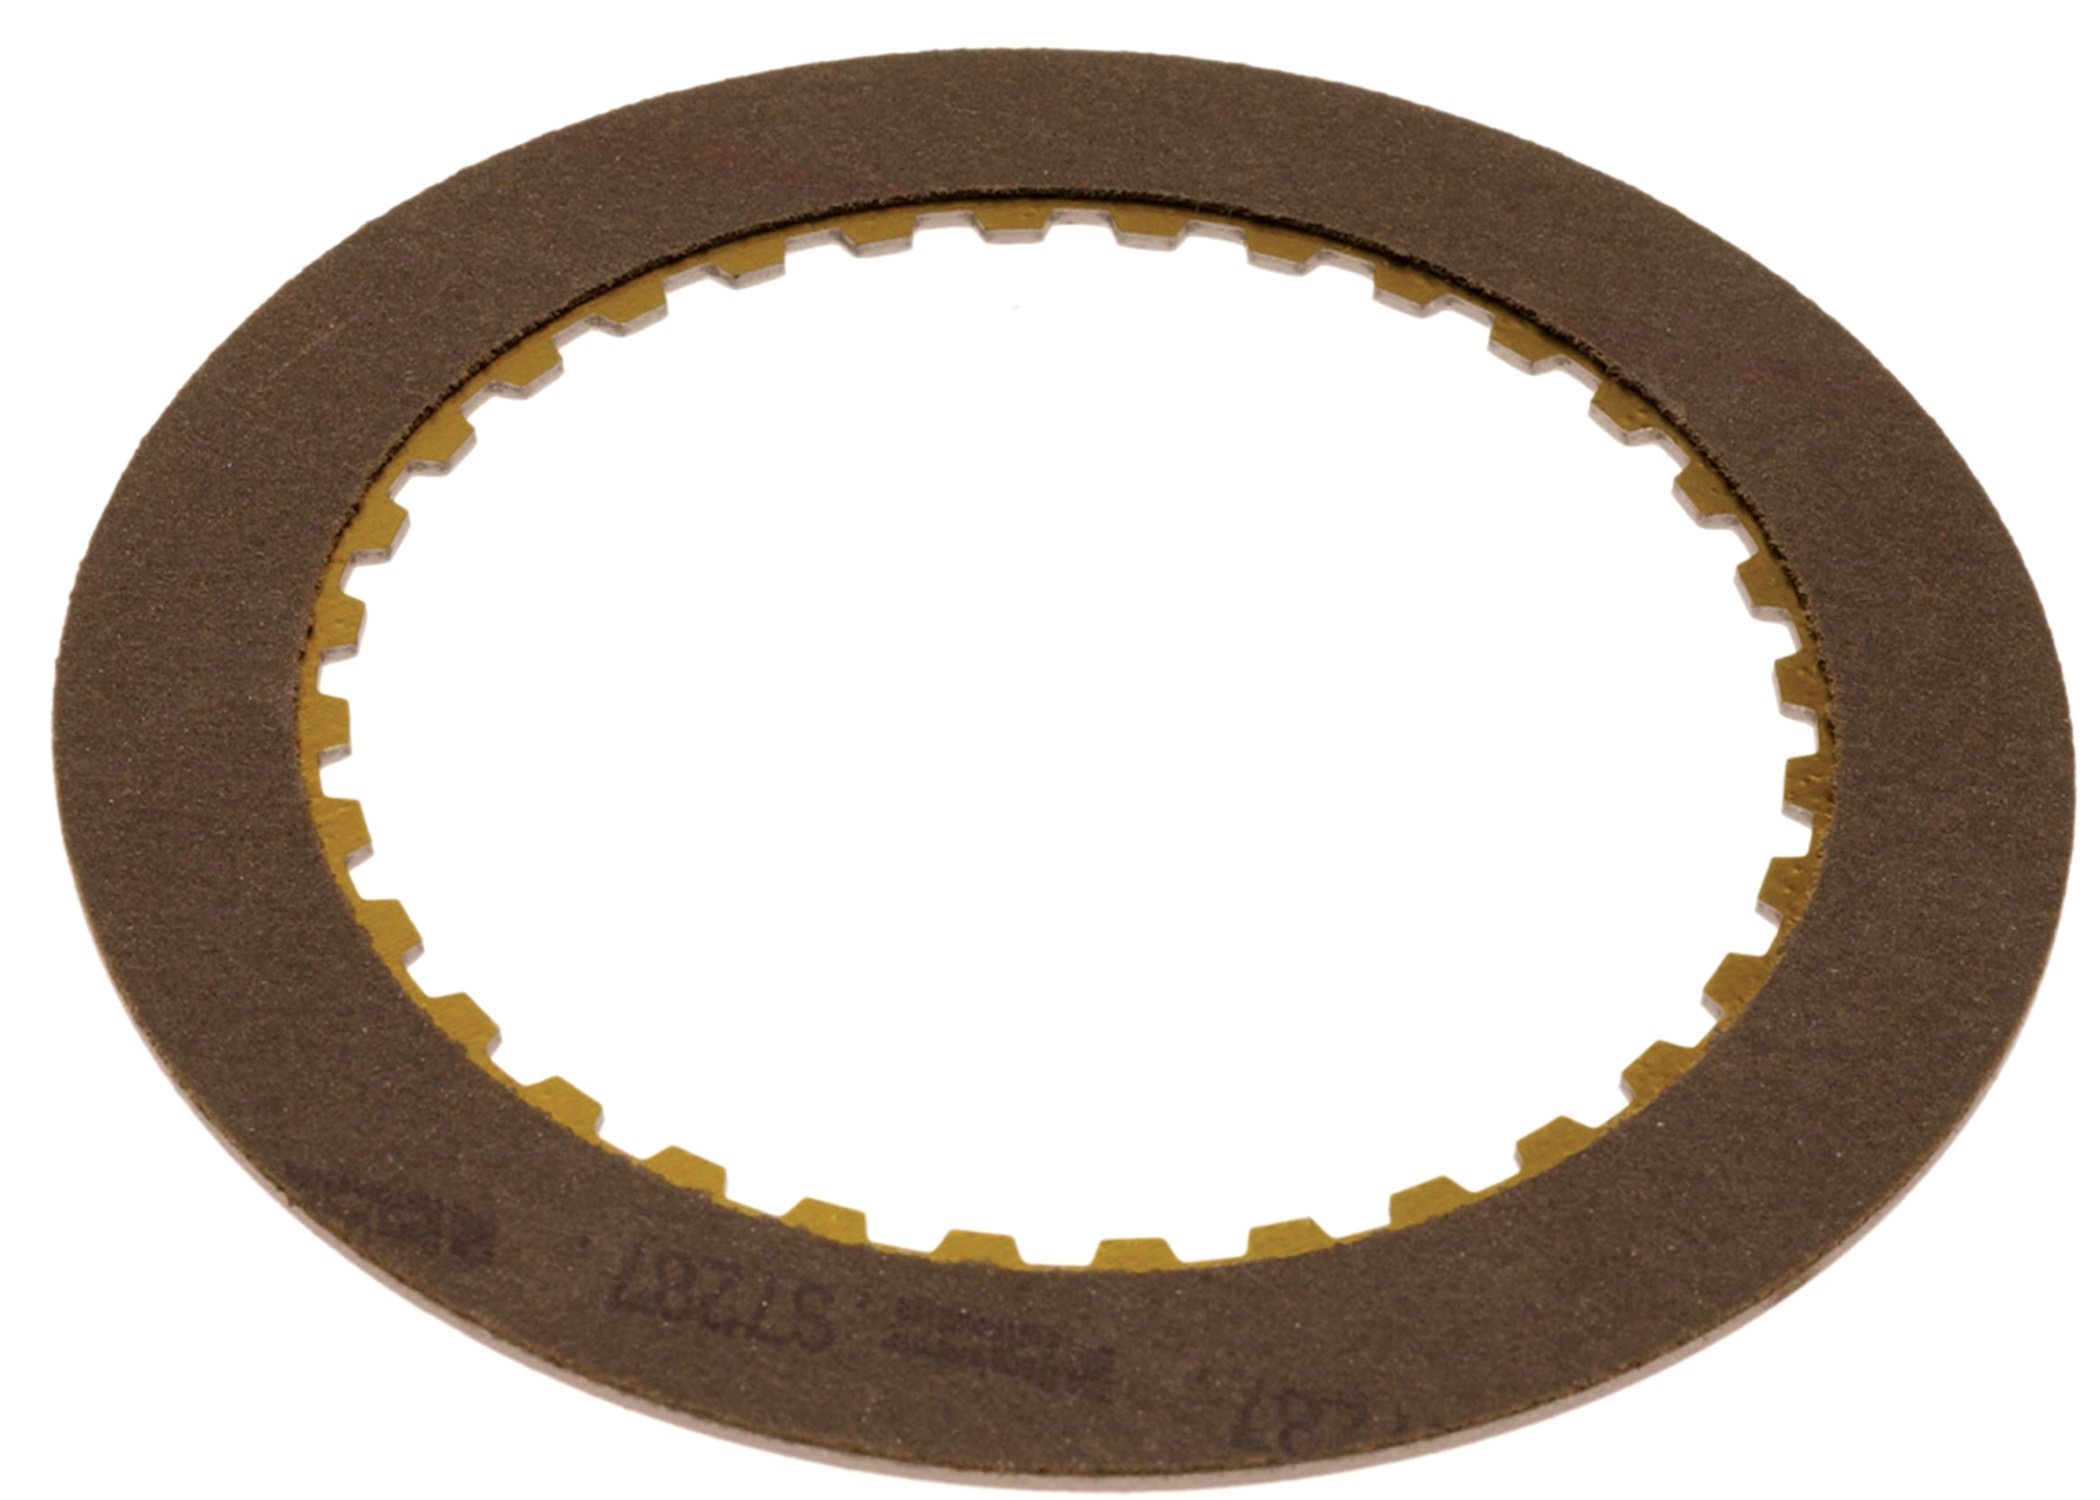 ACDELCO GM ORIGINAL EQUIPMENT - Transmission Clutch Friction Plate - DCB 24216287